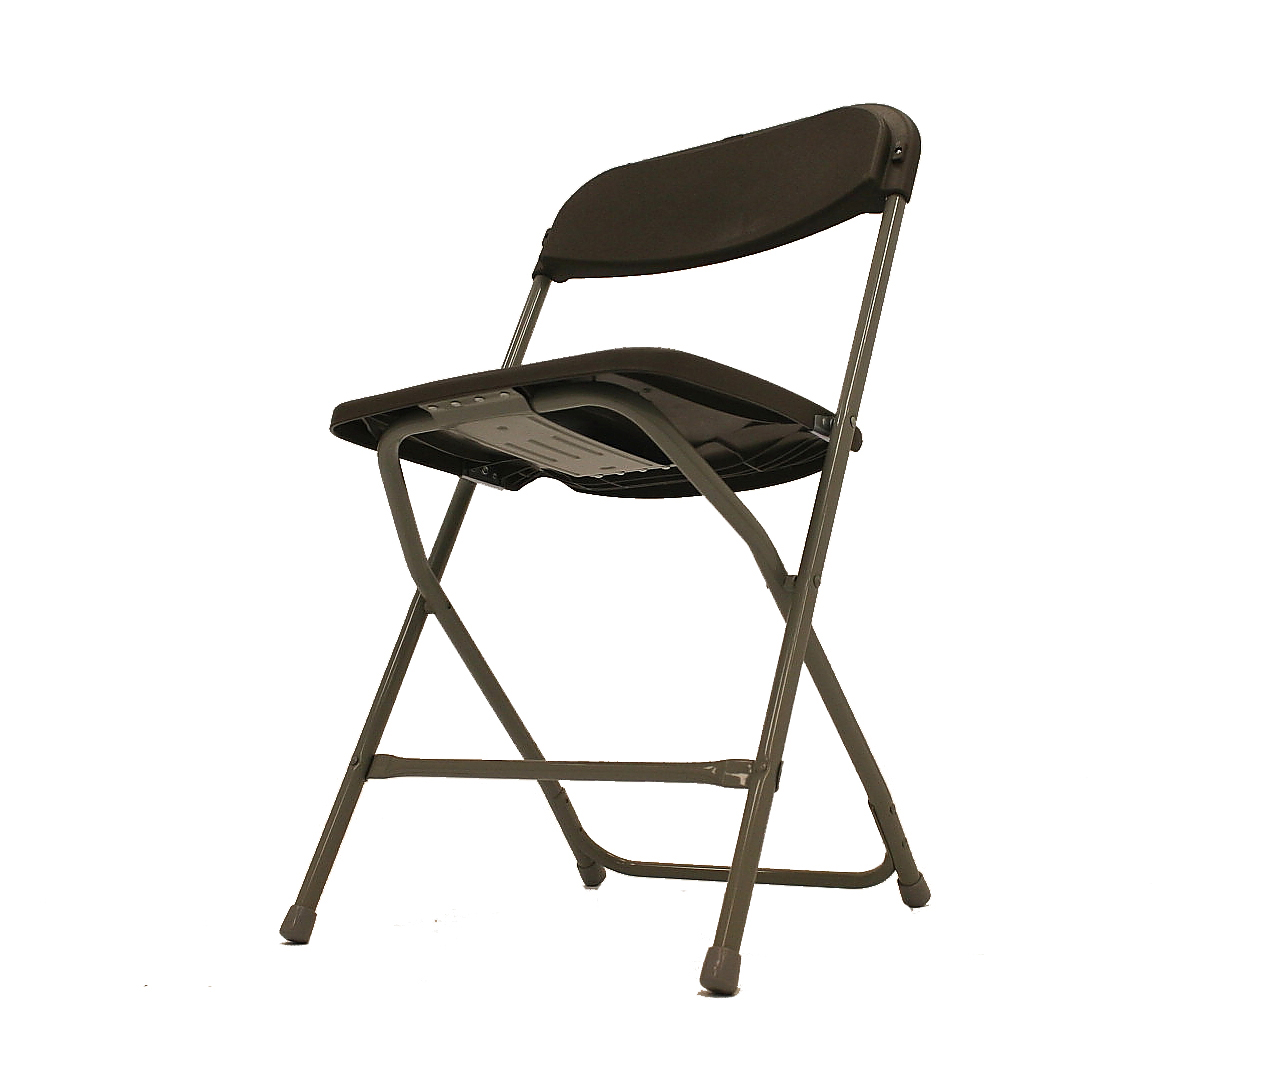 Folding Samsonite Style Chairs - BE Event Hire